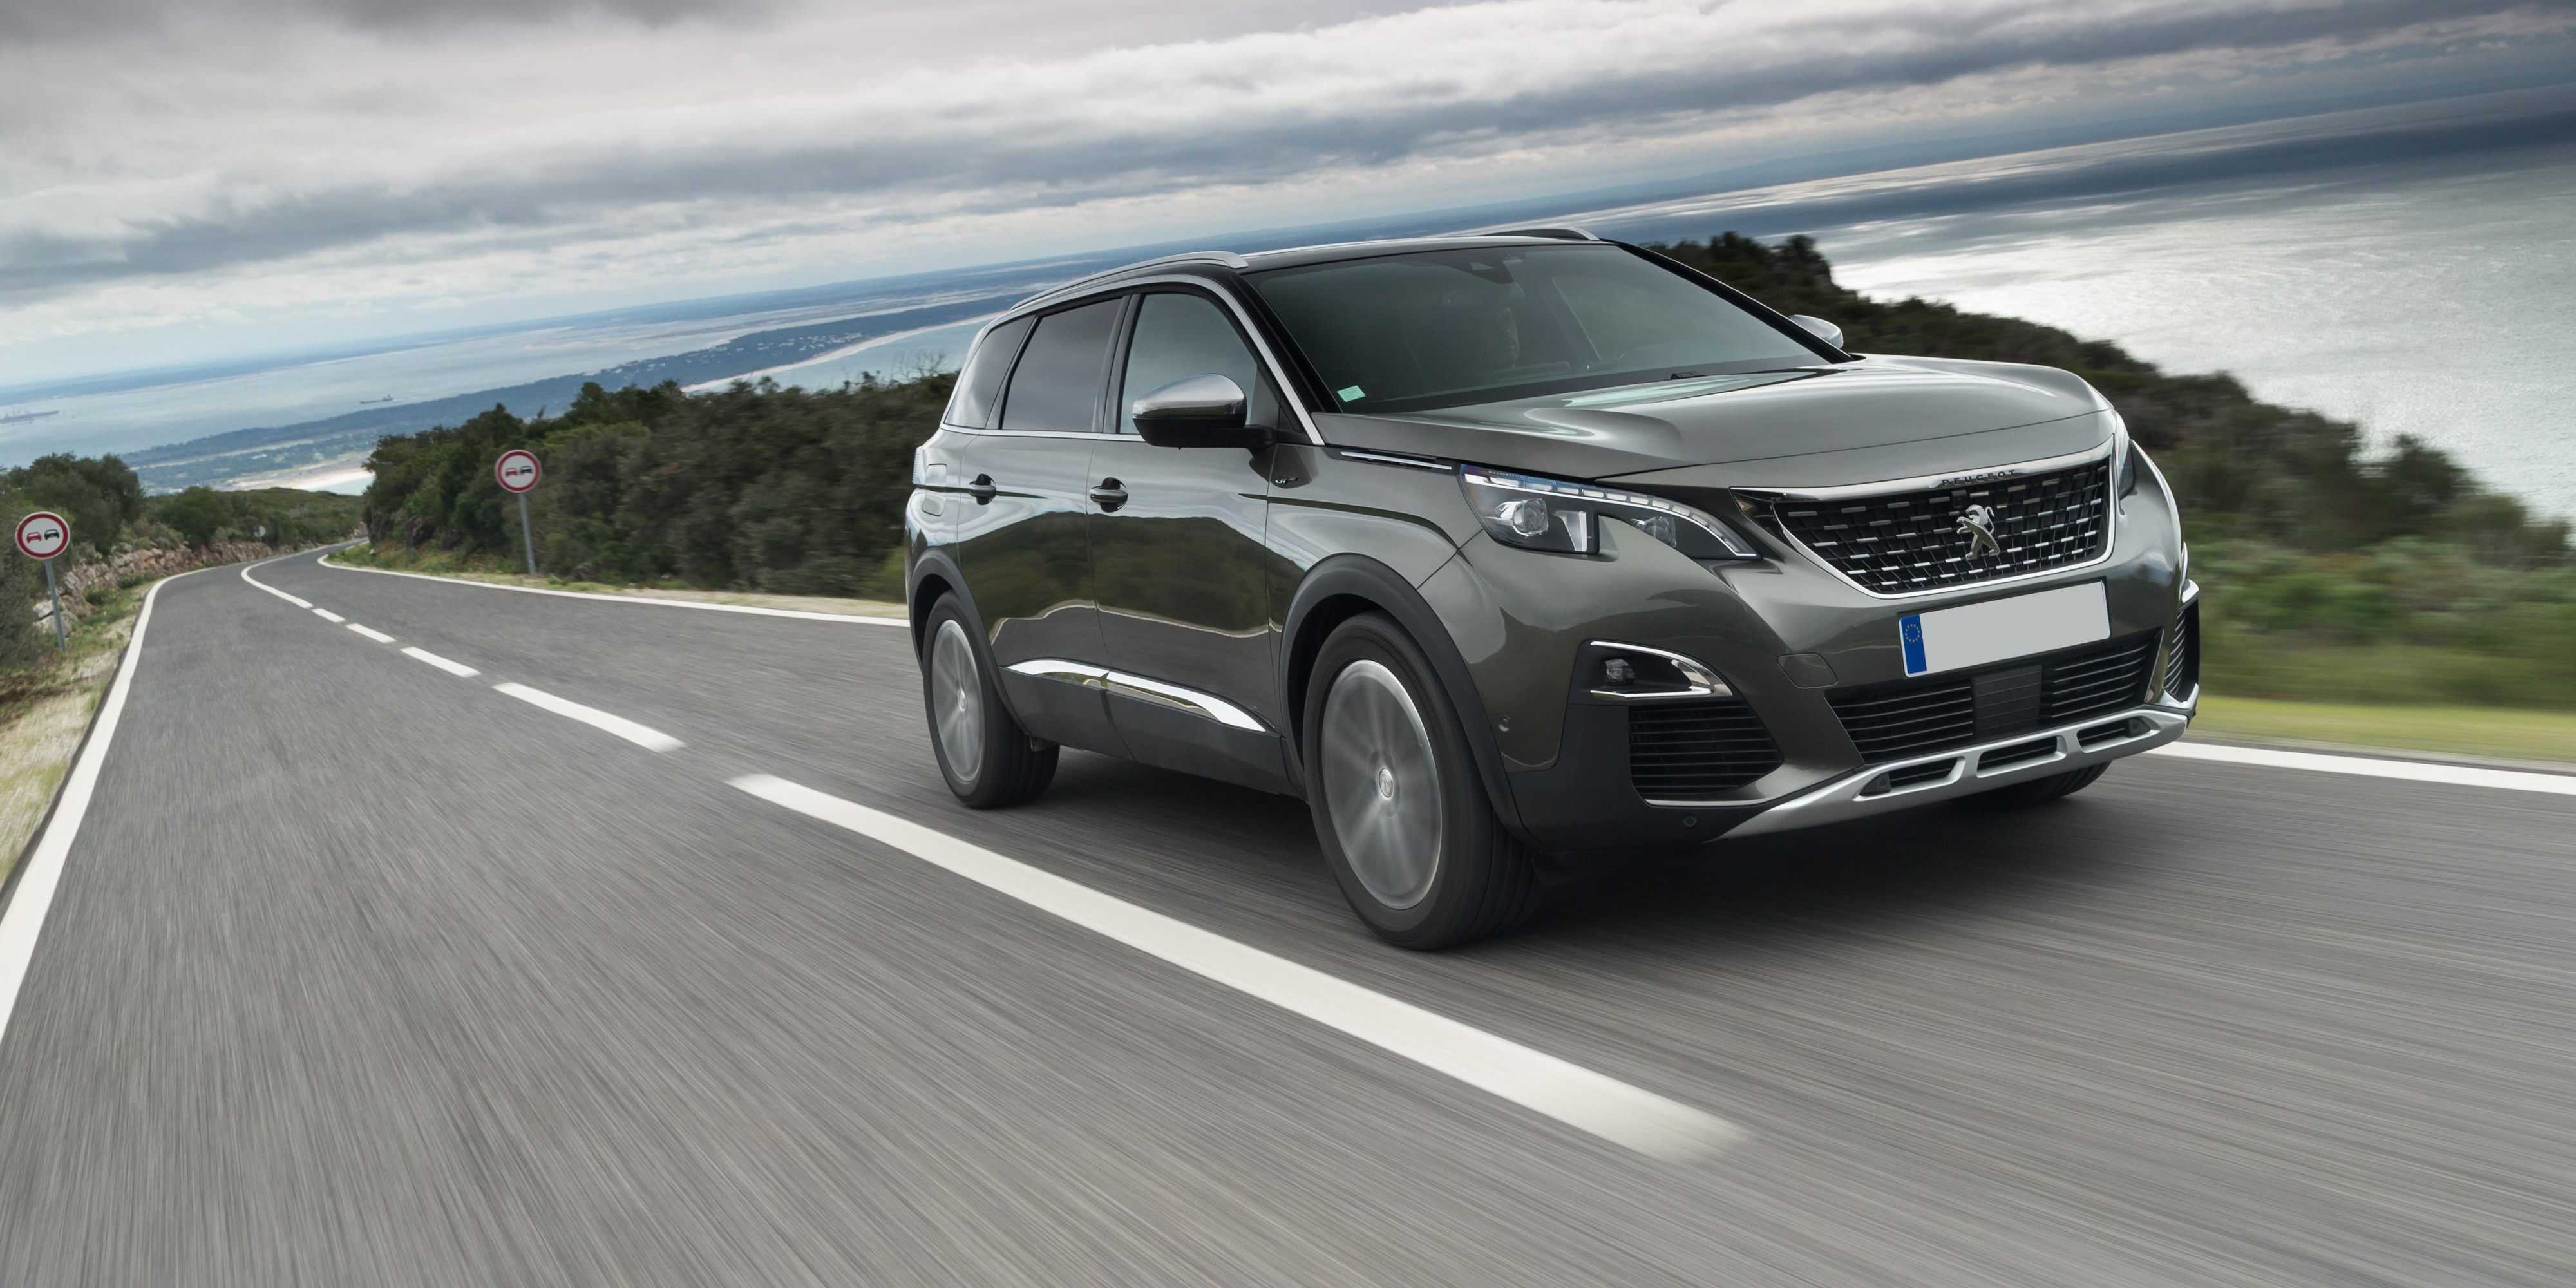 2018 peugeot 5008. modren 5008 view all 17 photos throughout 2018 peugeot 5008